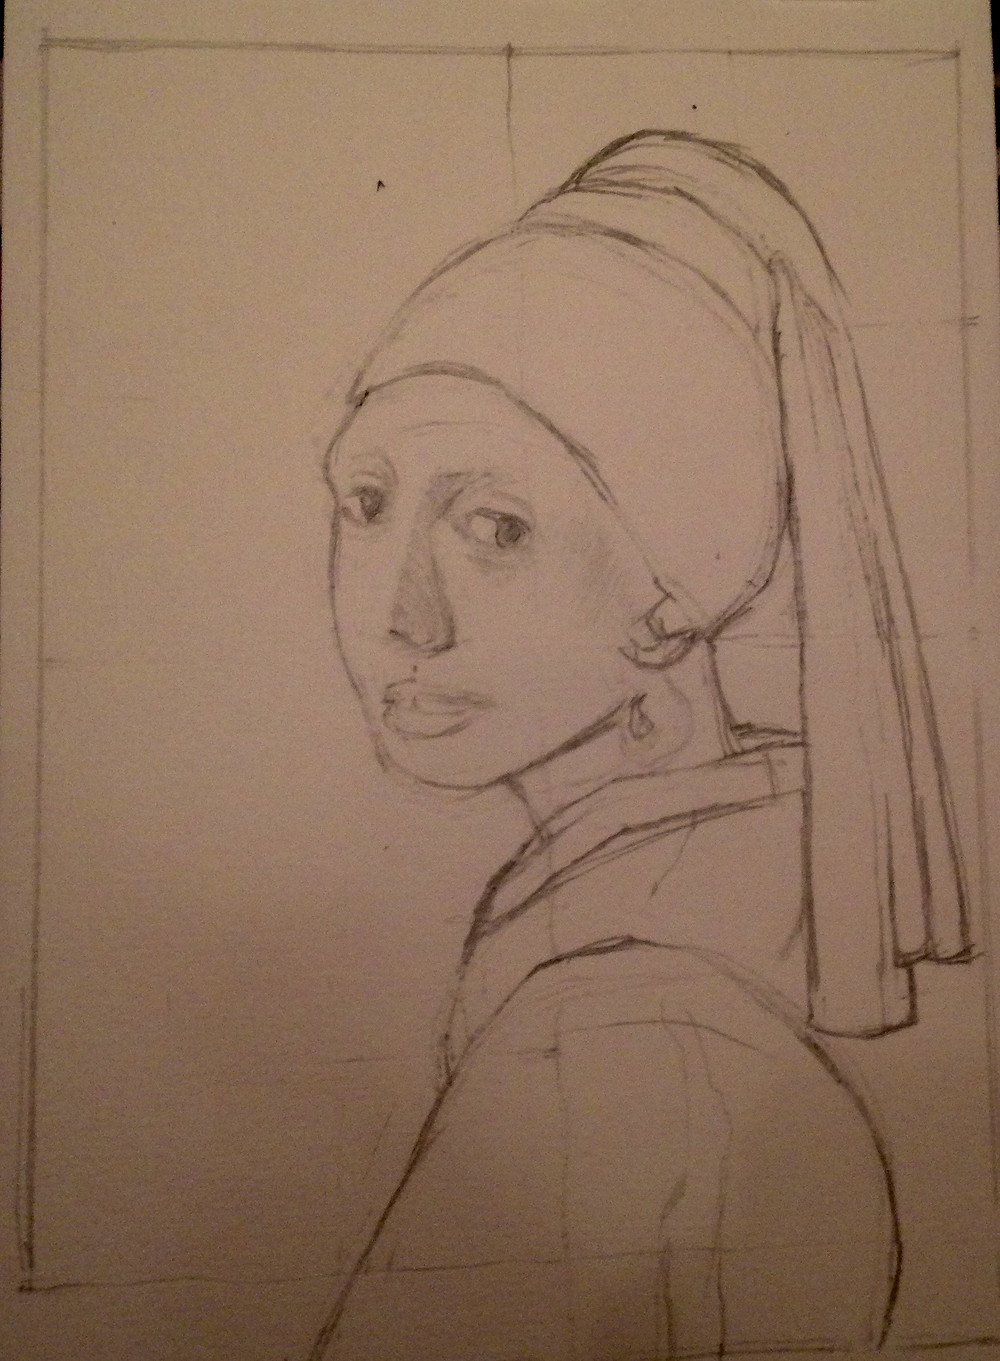 Study of Girl With a Peralr Earring by M. LaFalce